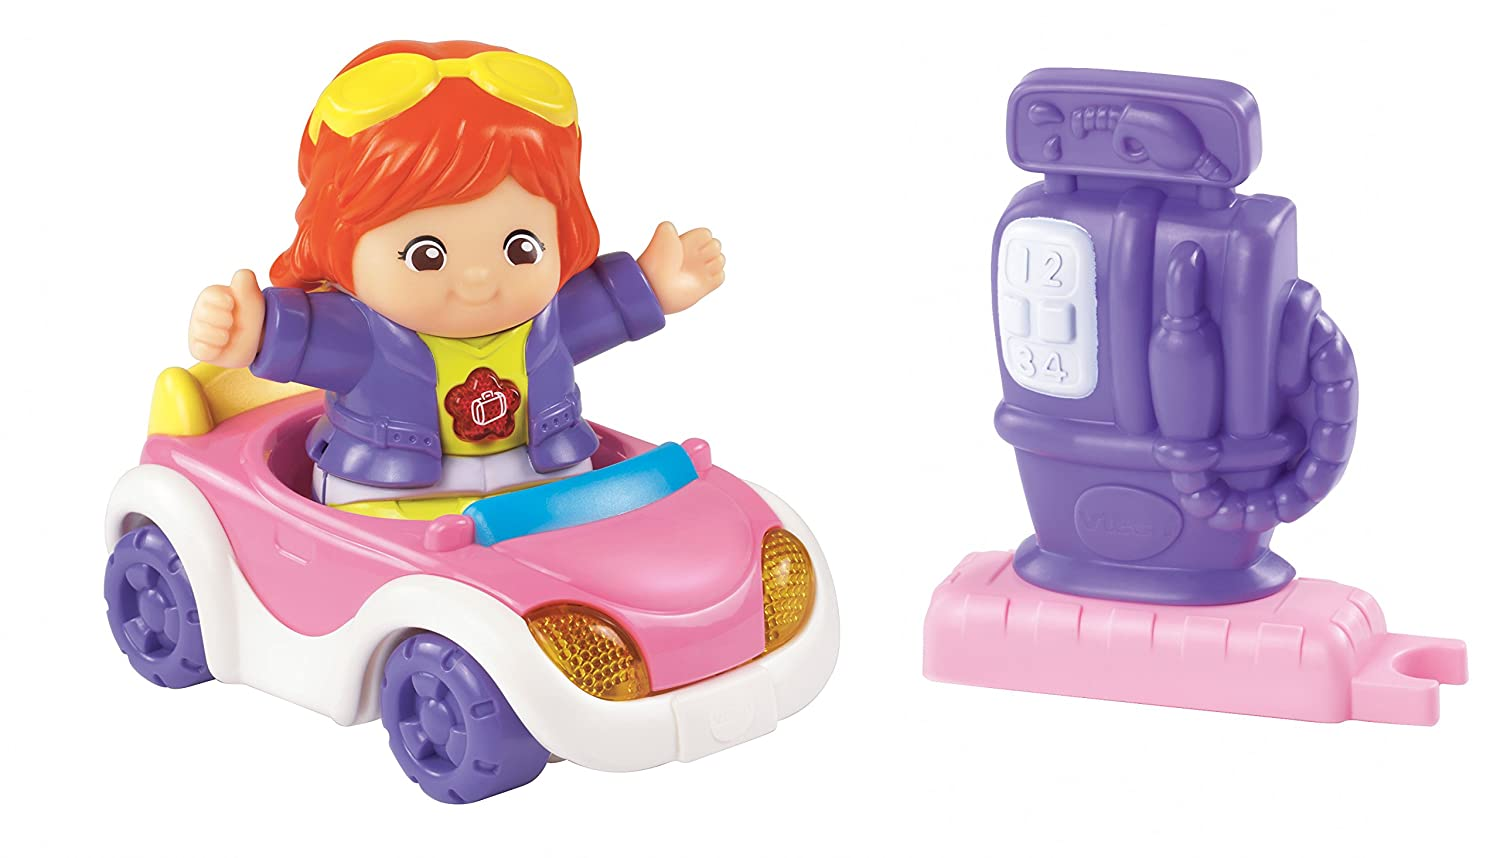 VTech Go Go Smart Friends Kaylee's Cruise and Go Convertible